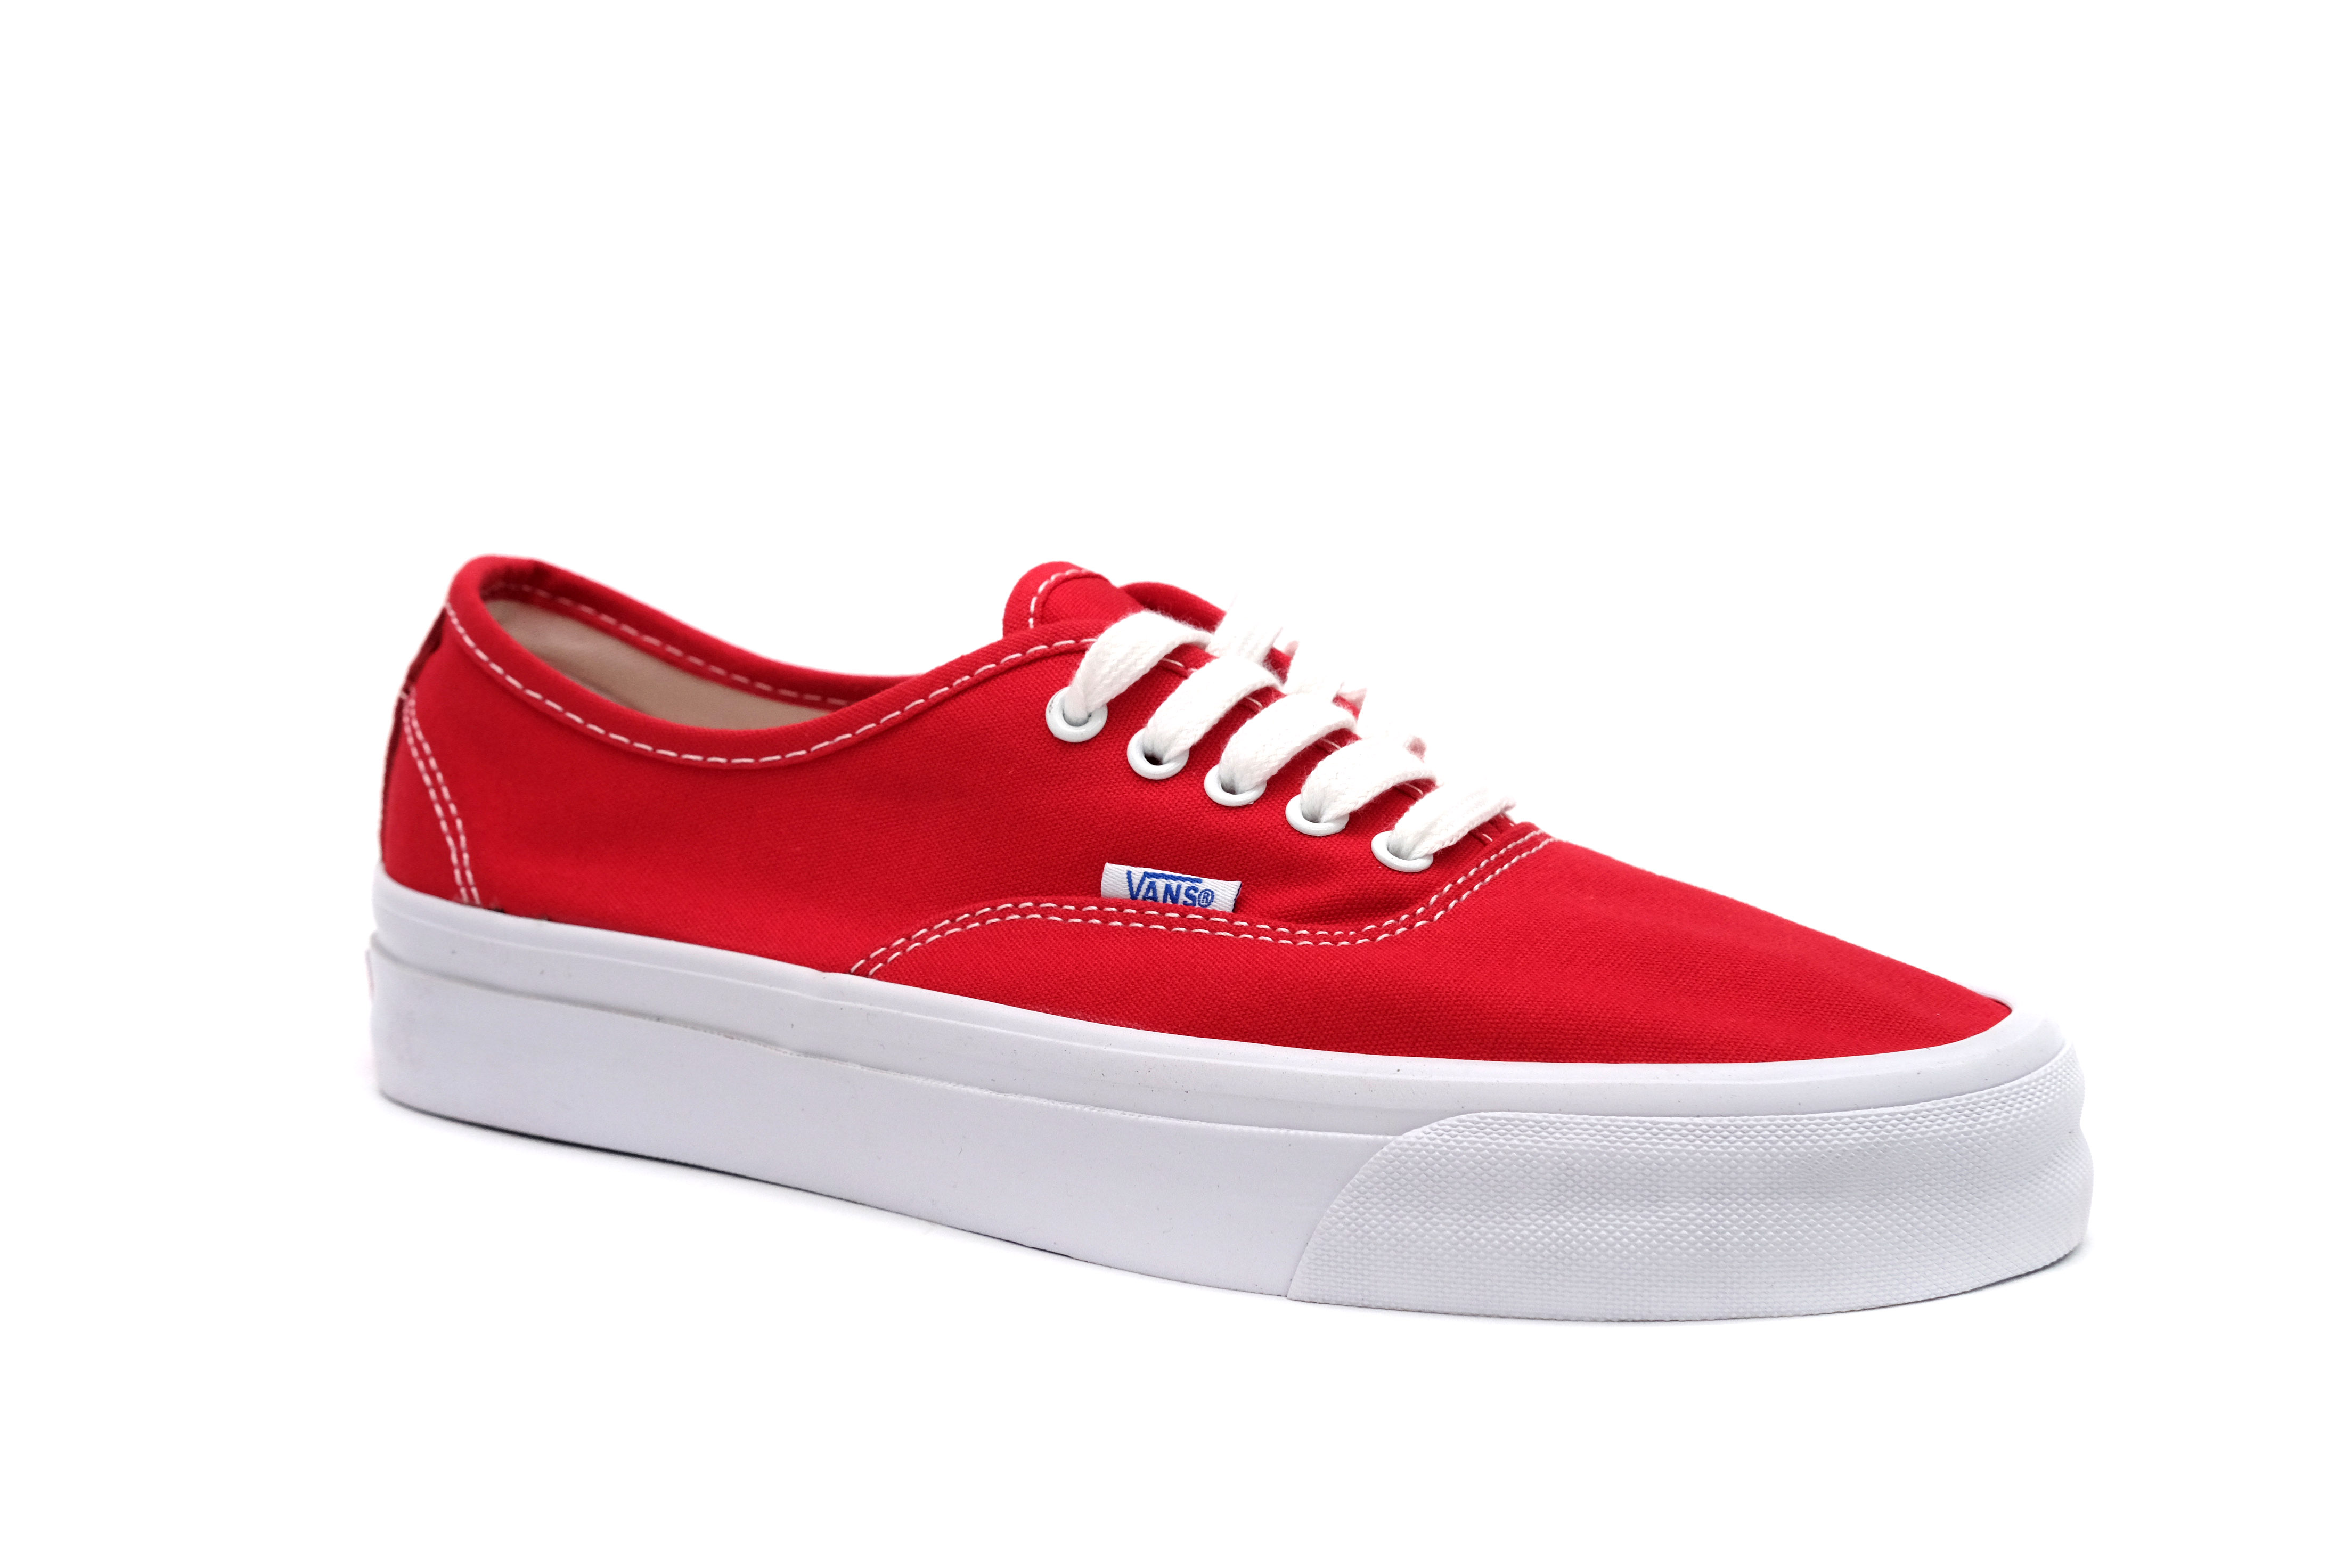 vault-og-authentic-lx-canvas-suede-red-2020